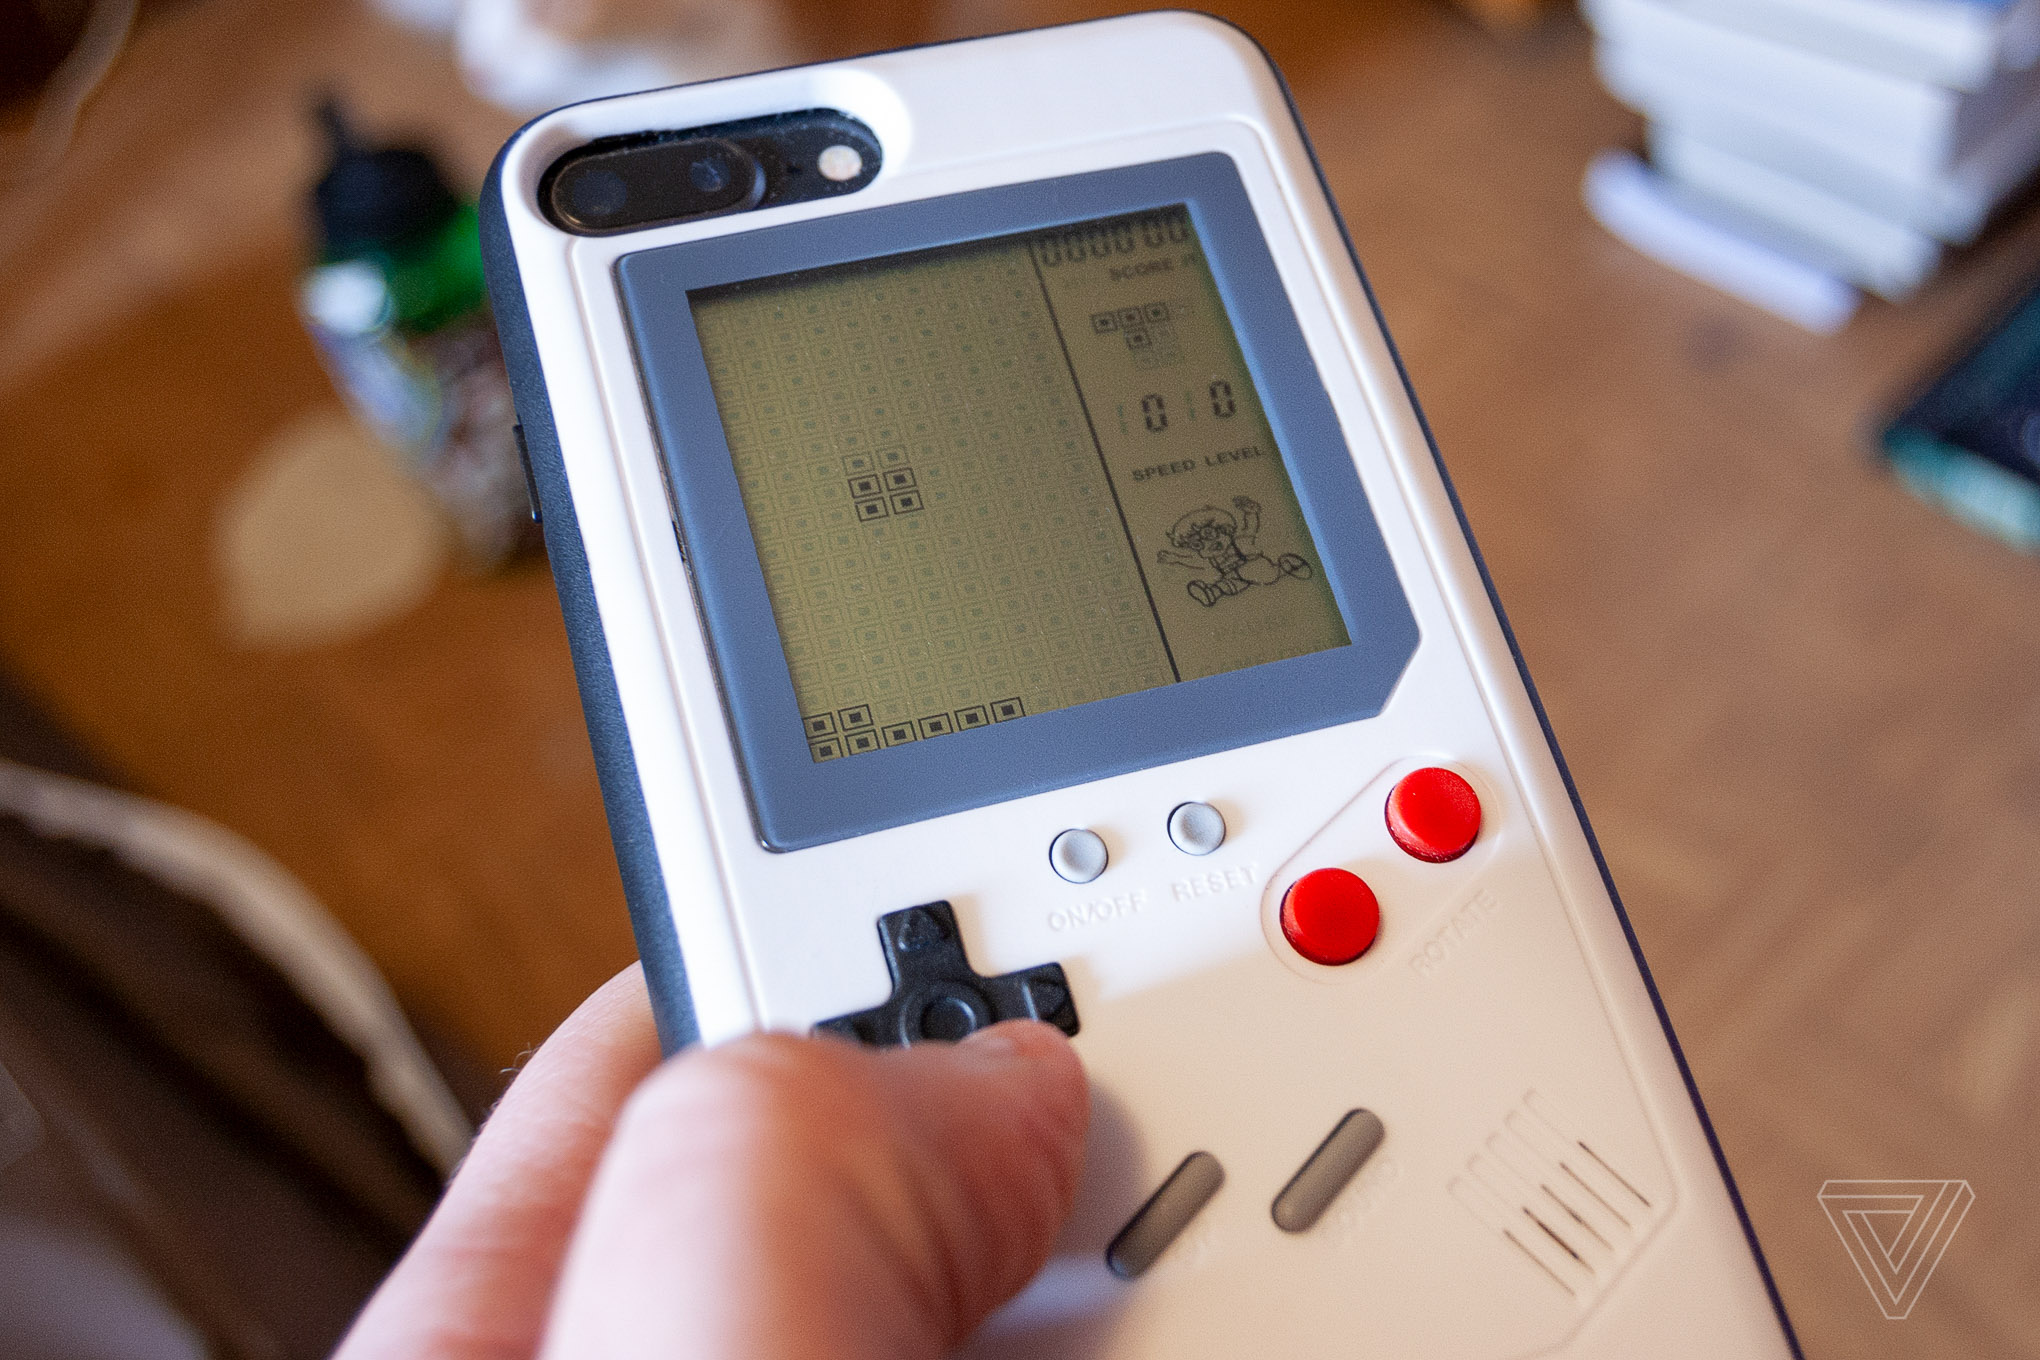 Wanle Case's Game Boy-style iPhone case has one redeeming feature